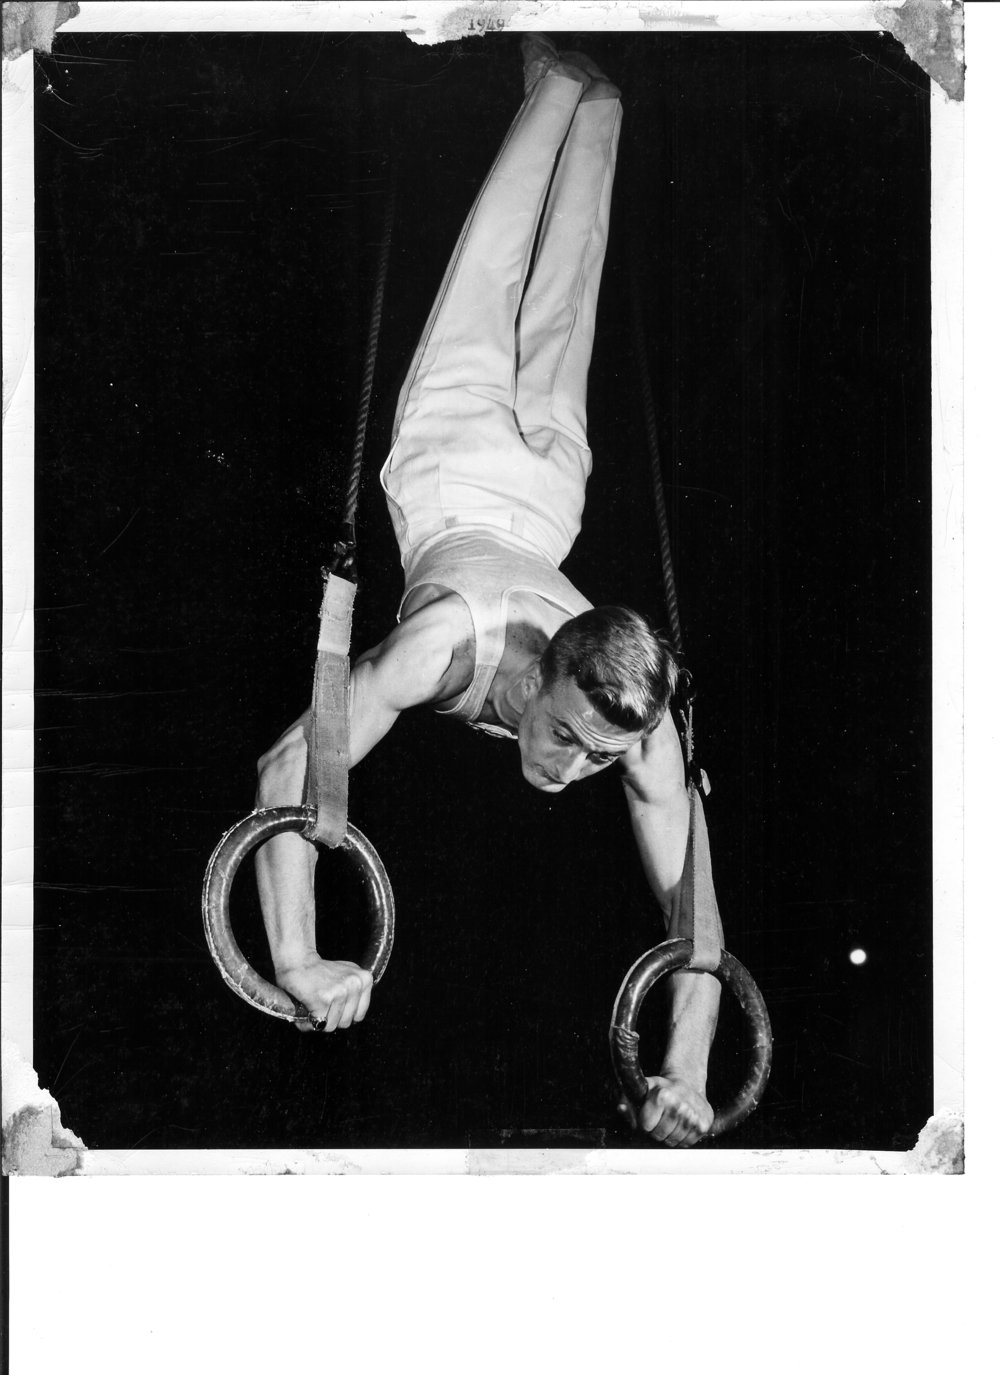 1949 Al Kuckhoff at DCAAU Gymnastics Championships on Flying Rings.jpg